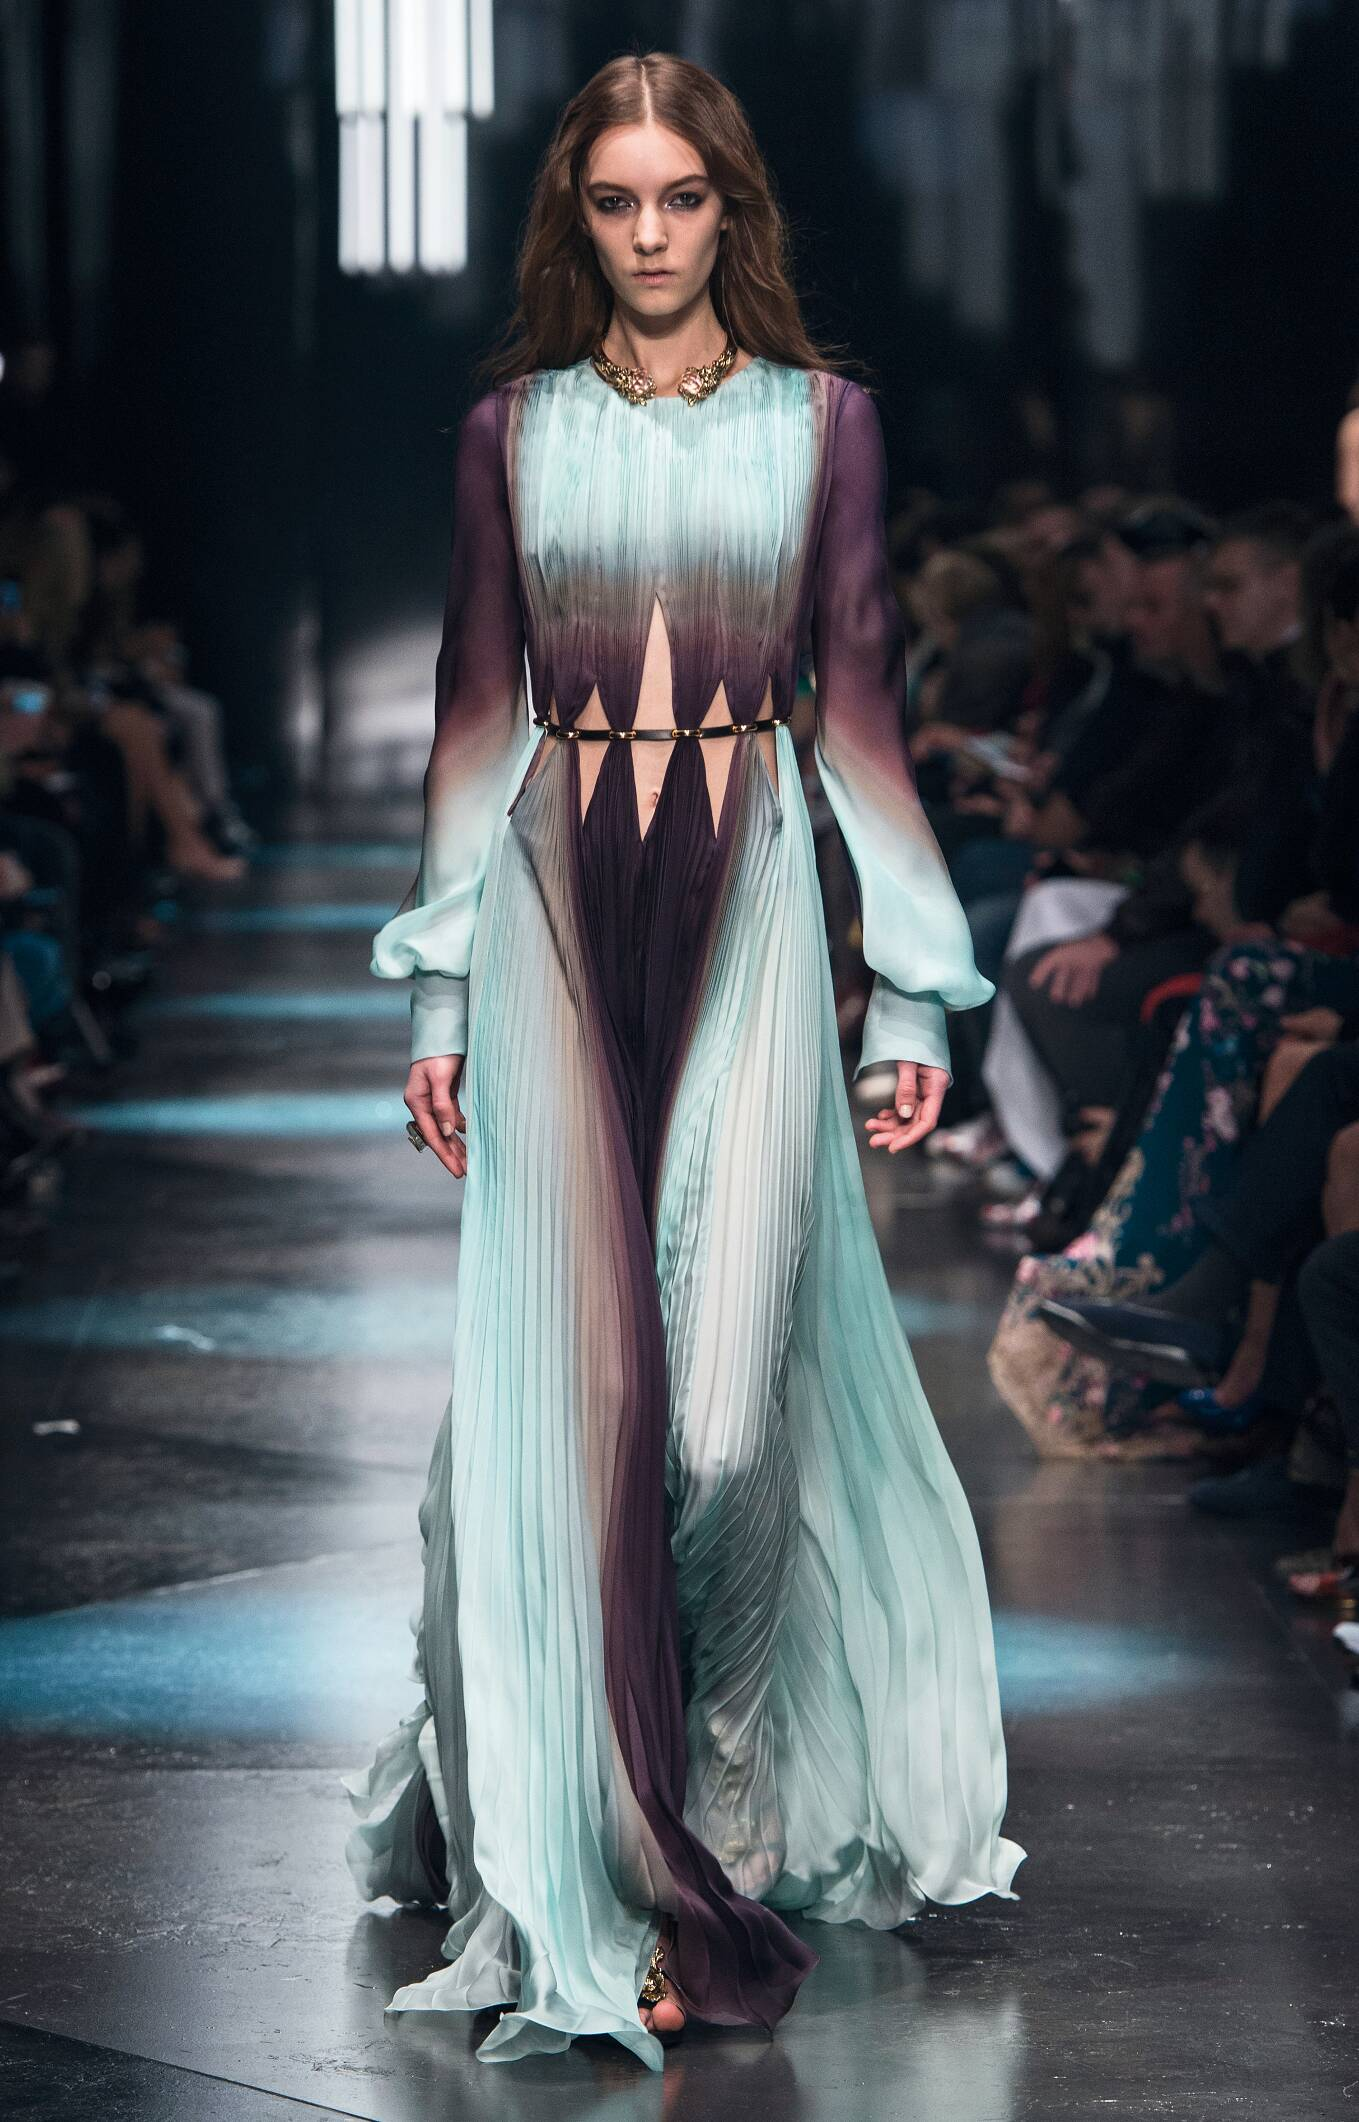 2015 16 Roberto Cavalli Fall Winter Womenswear Collection Milan Fashion Week Fashion Show